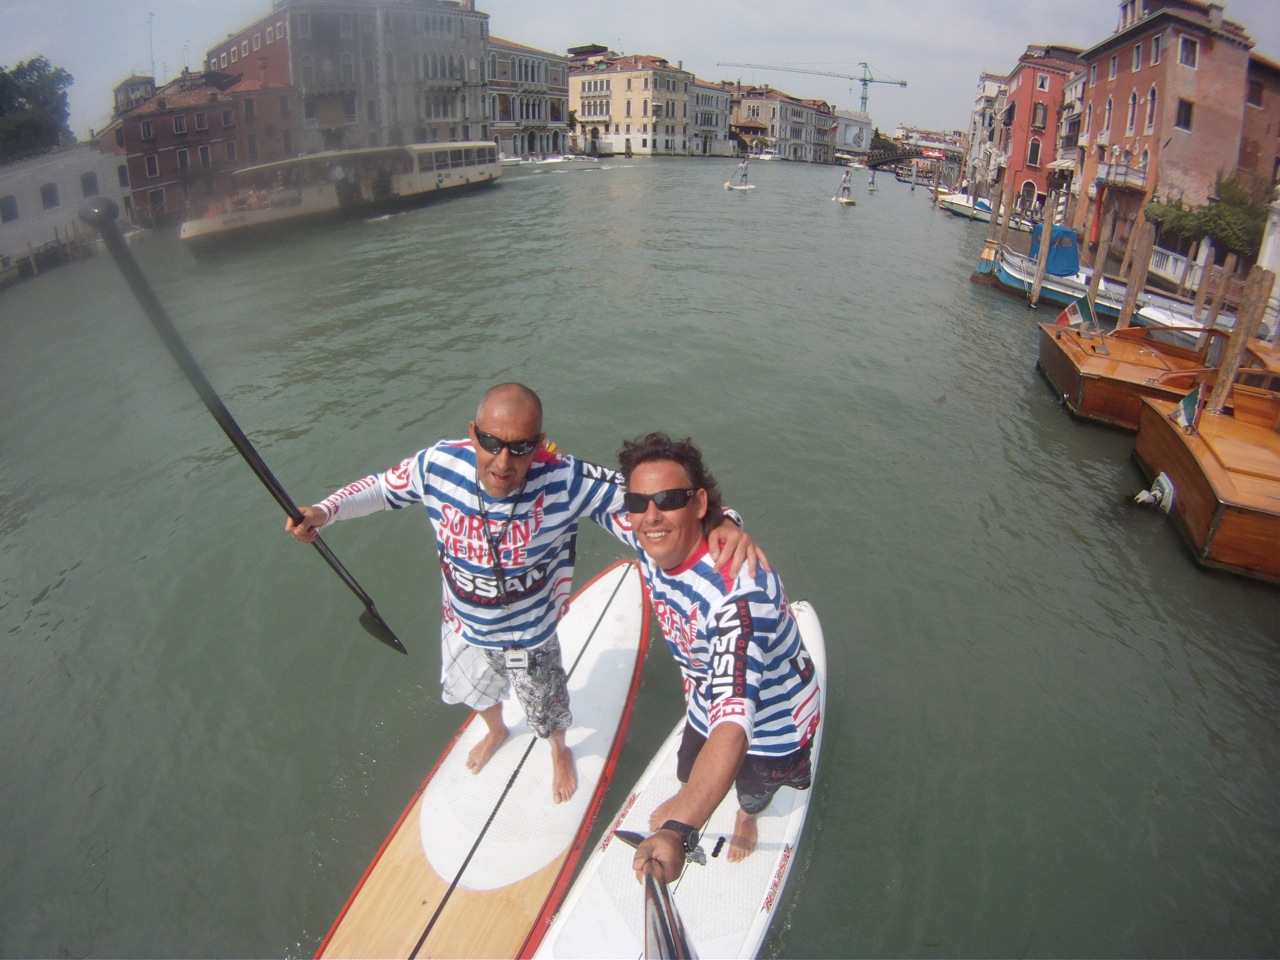 Andrea Pagan SEATEXBOARDS: Sup in Venice part. 1